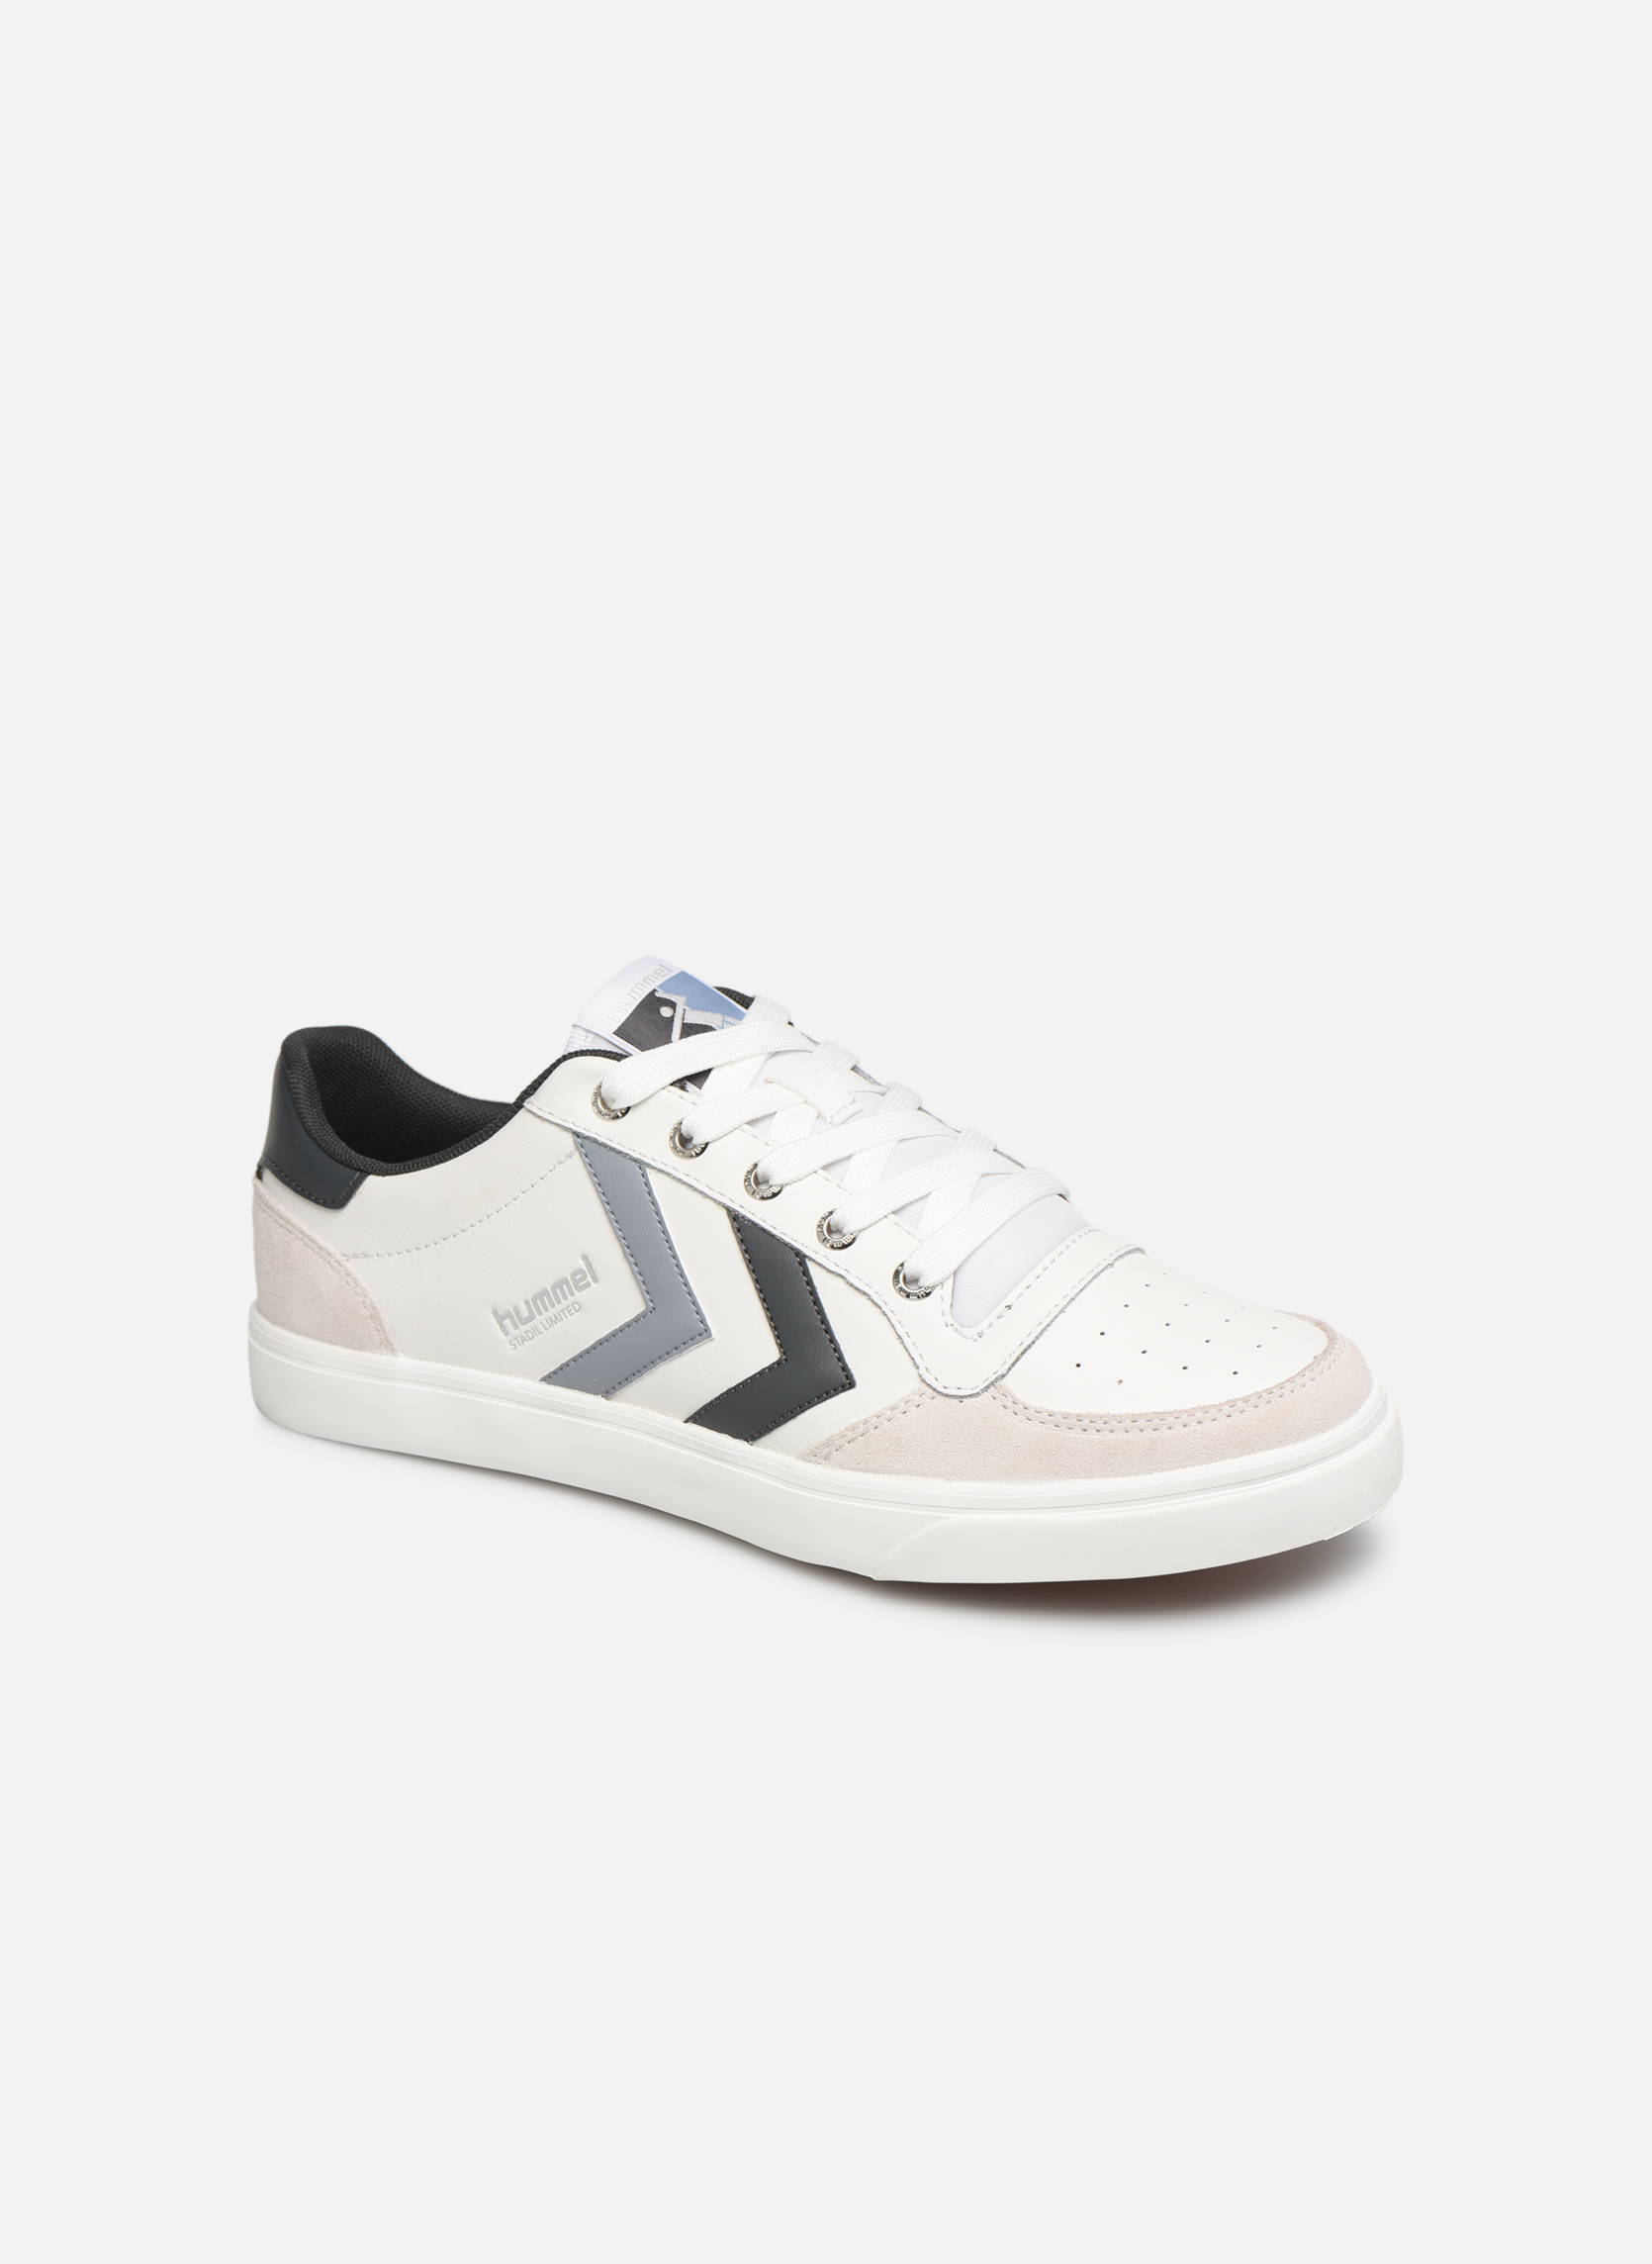 Sneakers Hummel Wit